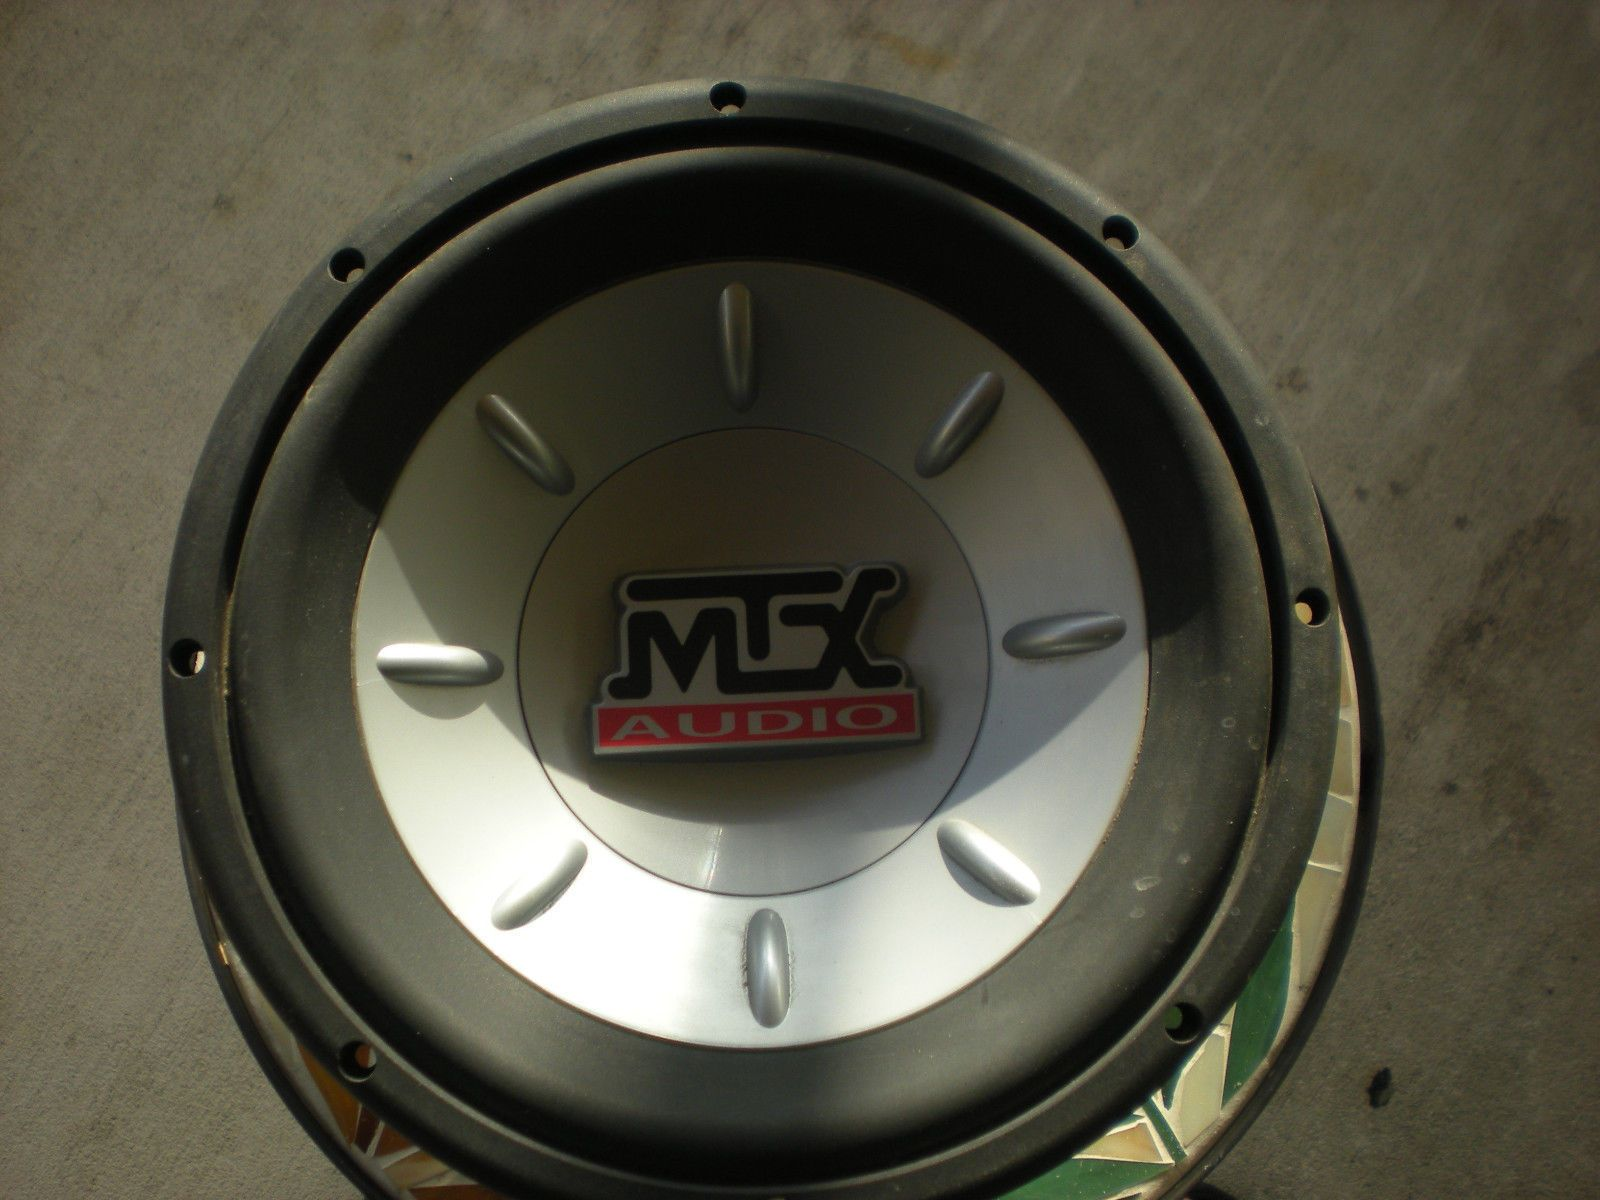 Mtx audio thunder 6000 10 svc subwoofer musical collection explore thunder audio and more mtx audio thunder 6000 10 svc subwoofer publicscrutiny Gallery